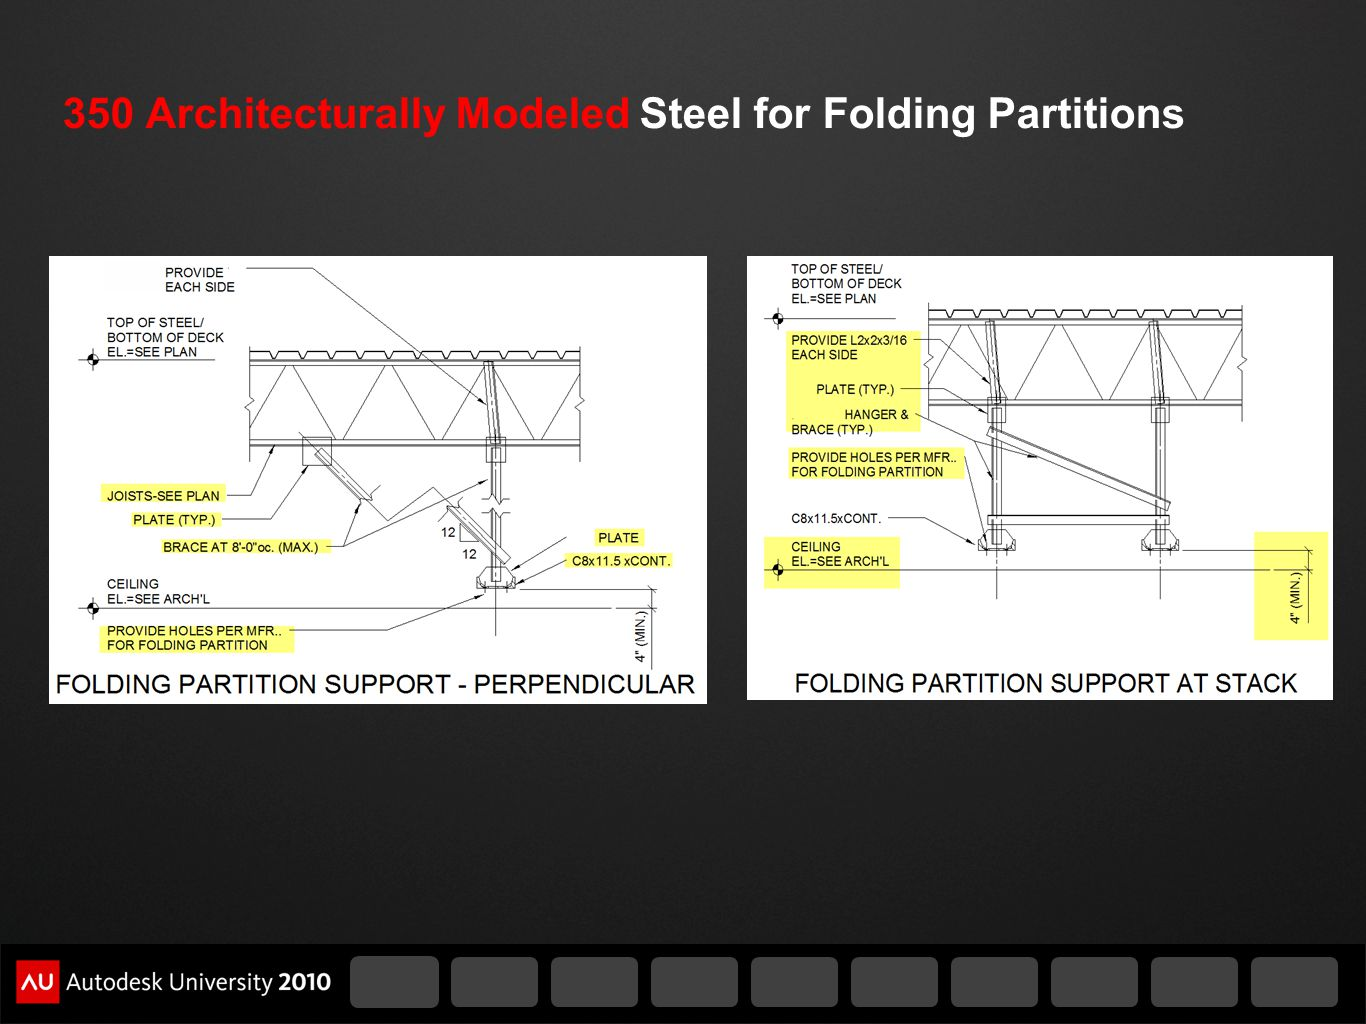 350 Architecturally Modeled Steel for Folding Partitions